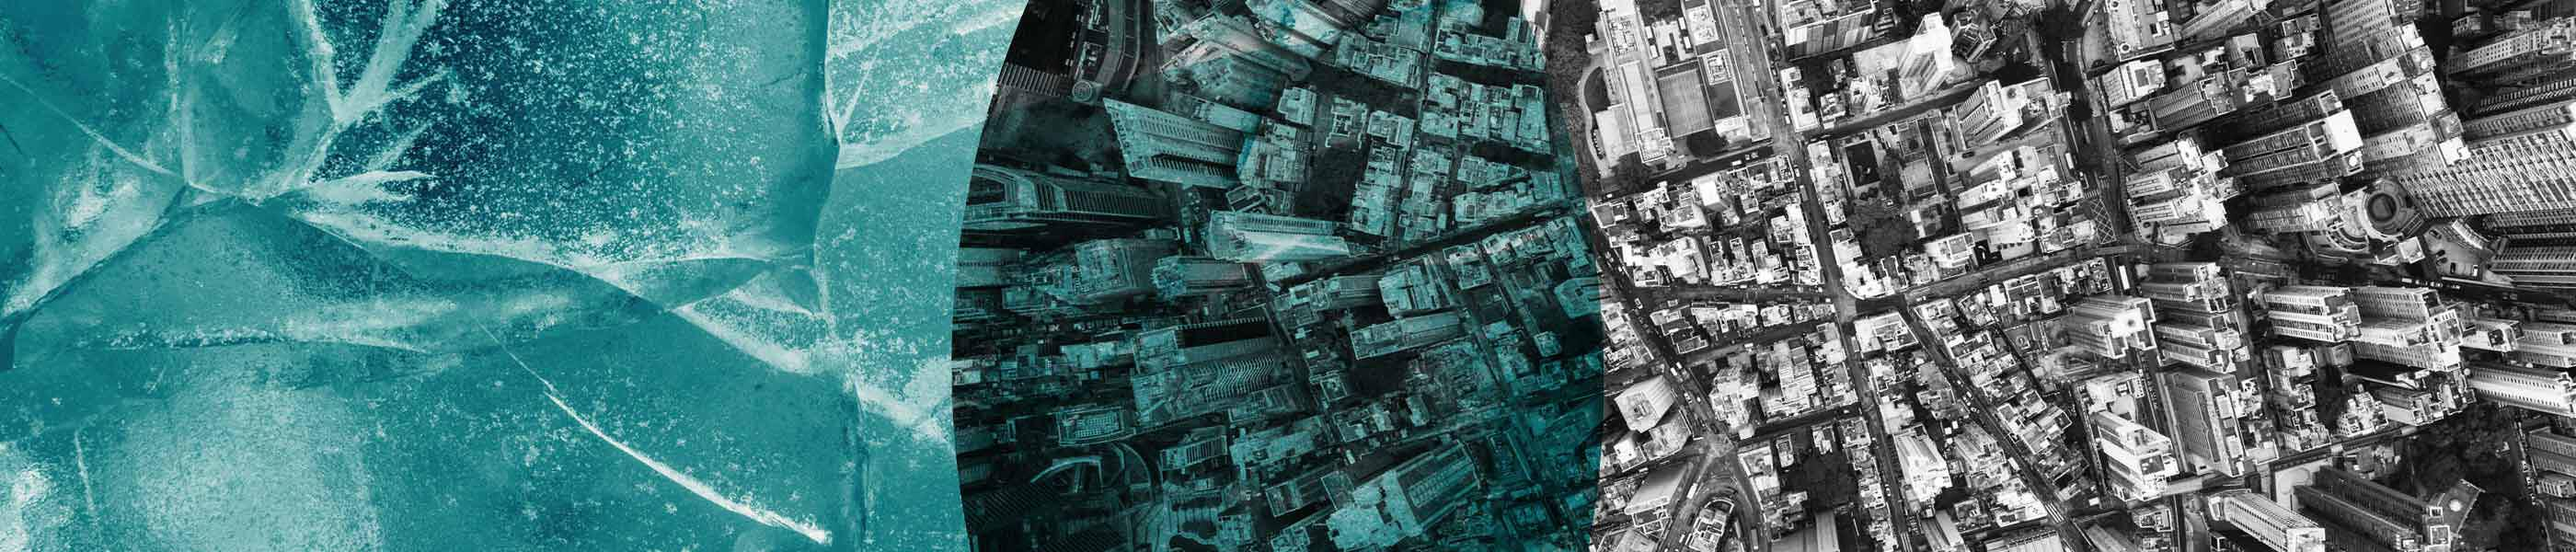 Overlapping photos of cracked ice and a towering city scape, seen from above